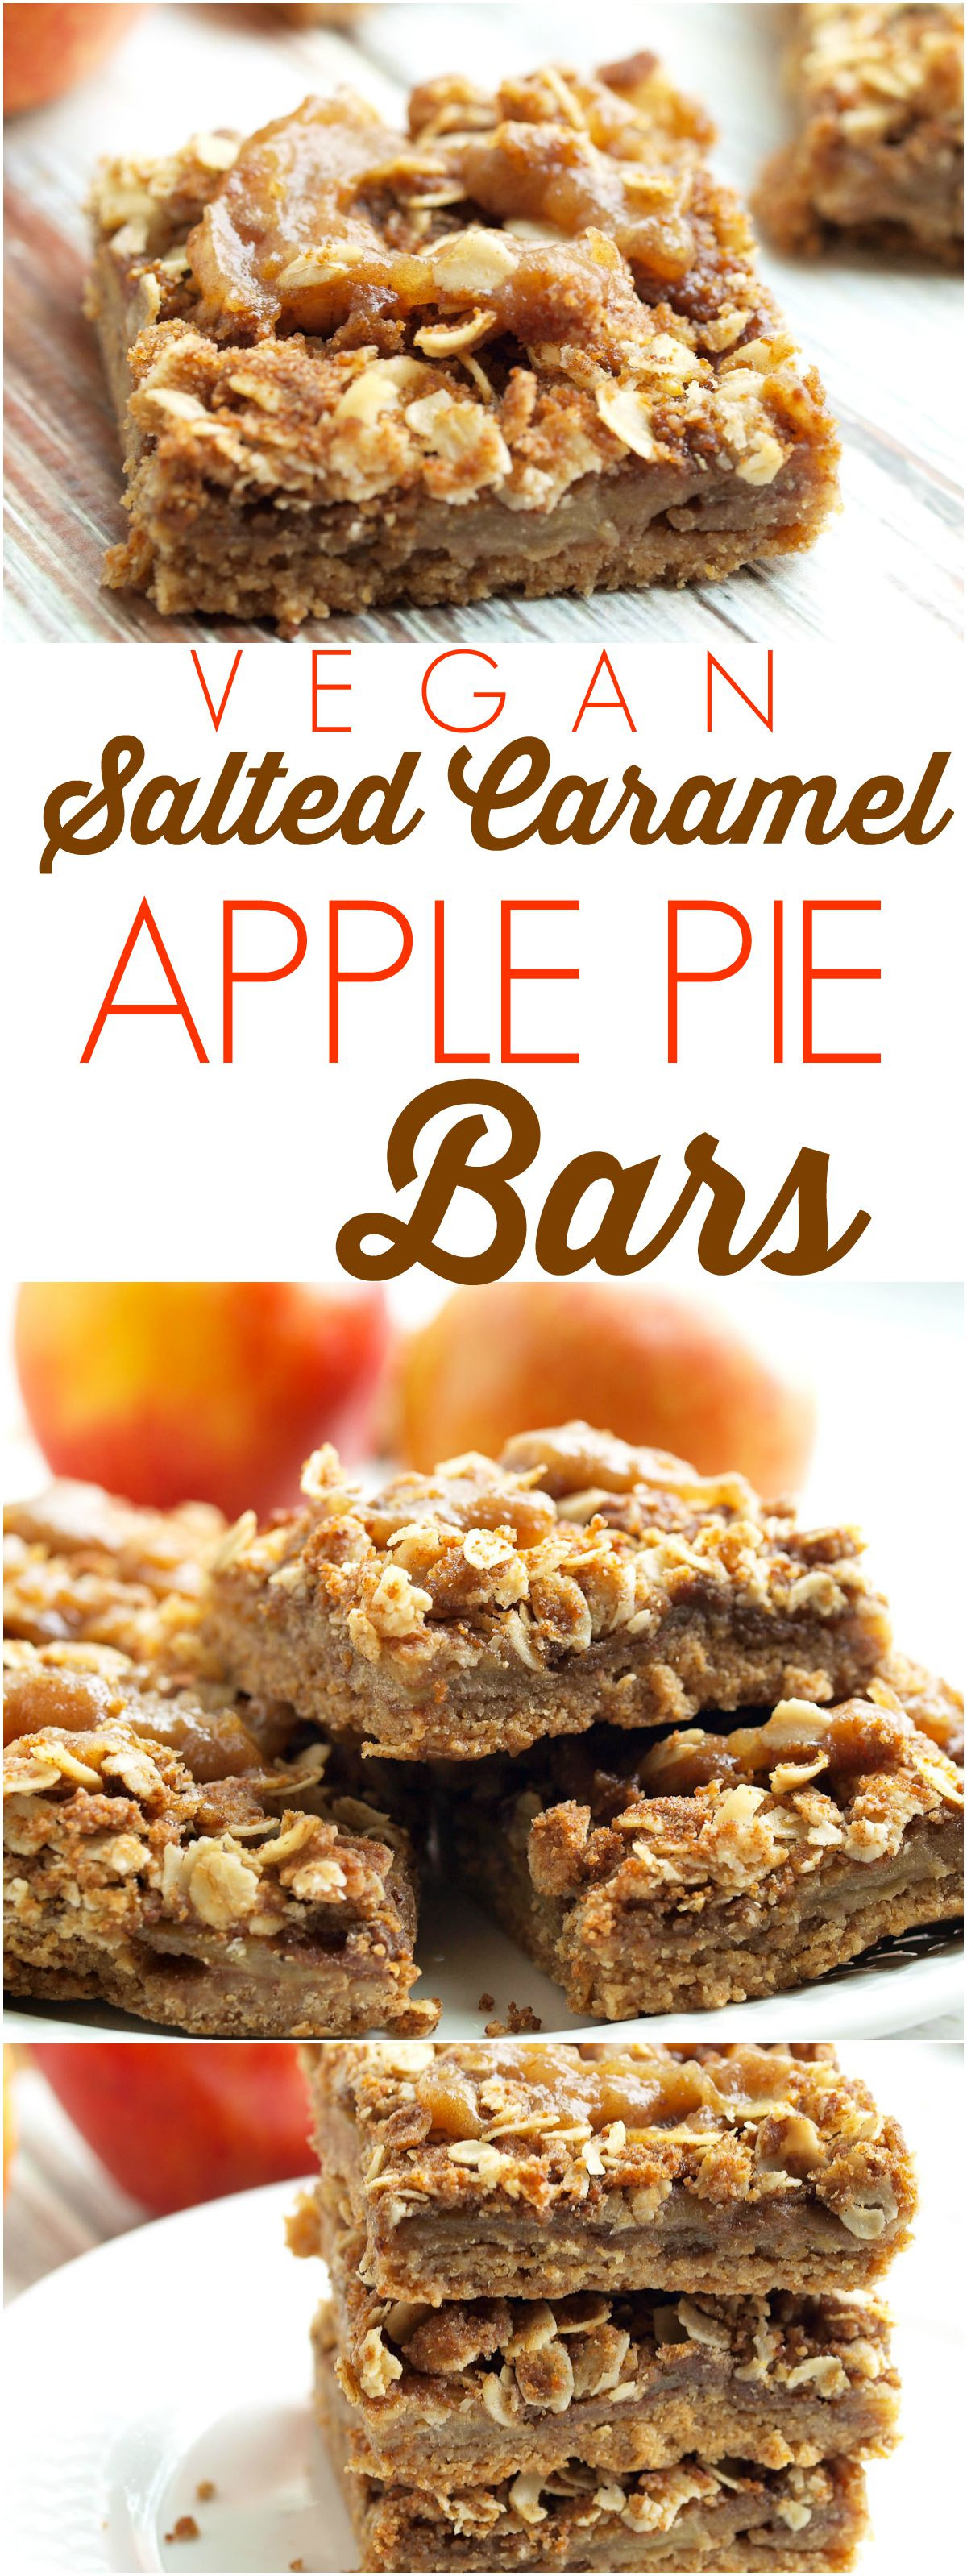 Vegetarian Baking Recipes  Vegan Salted Caramel Apple Pie Bars Happy Healthy Mama